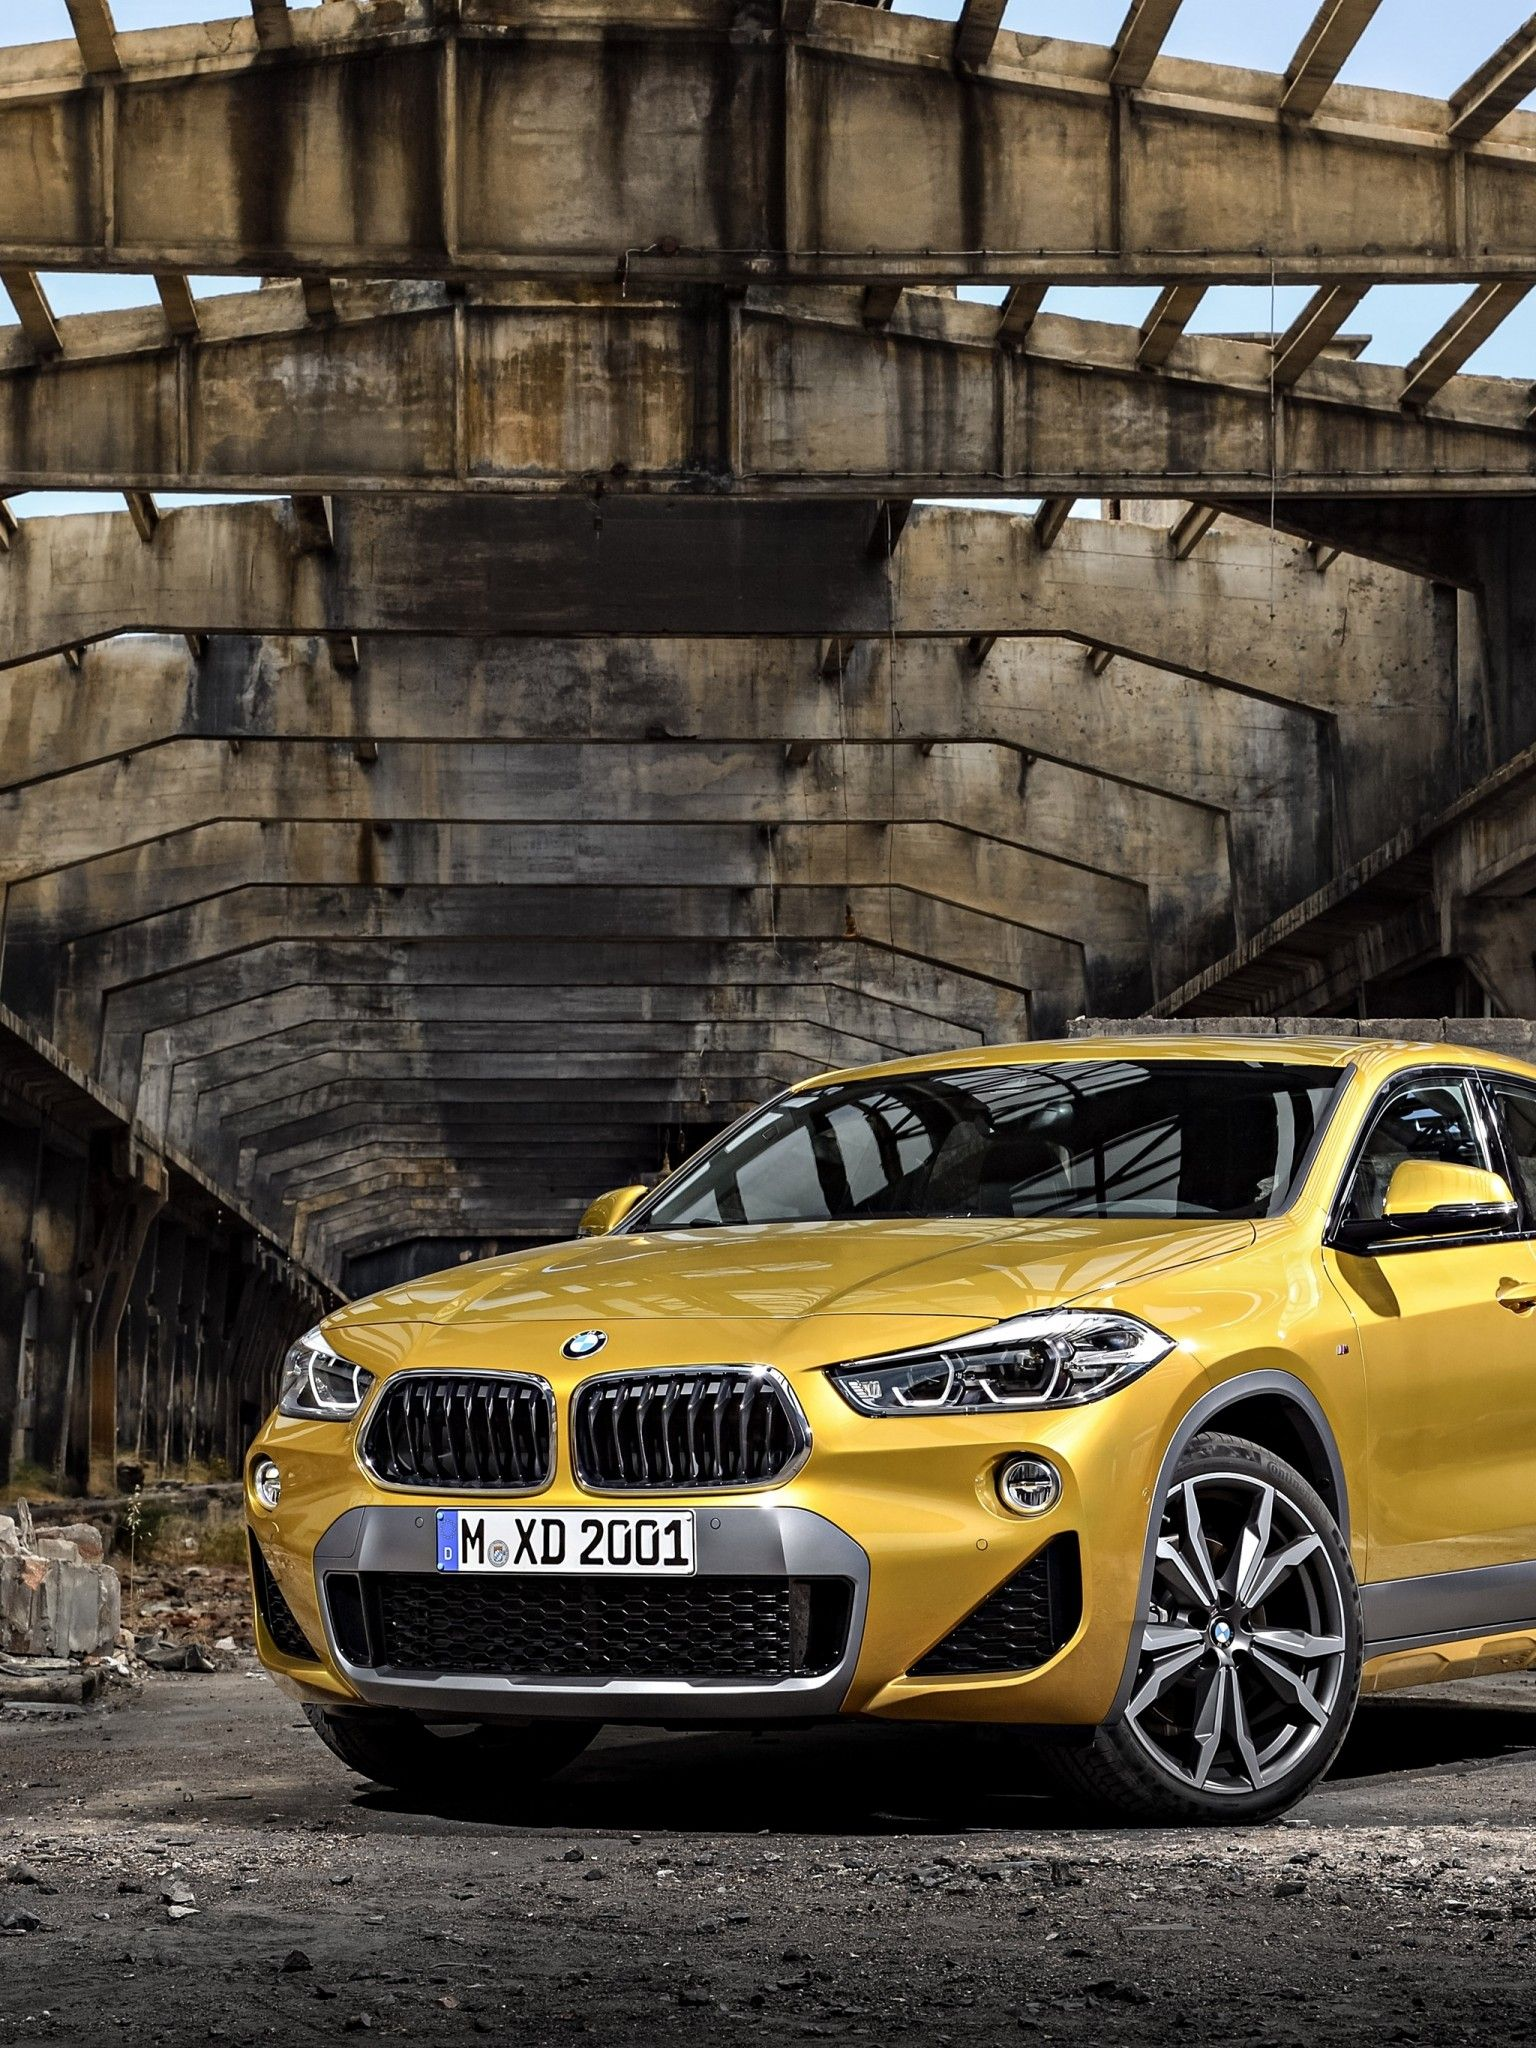 1536x2048 Download 1536x2048 Bmw X2, Yellow, Luxury, Cars Wallpapers for Apple ...